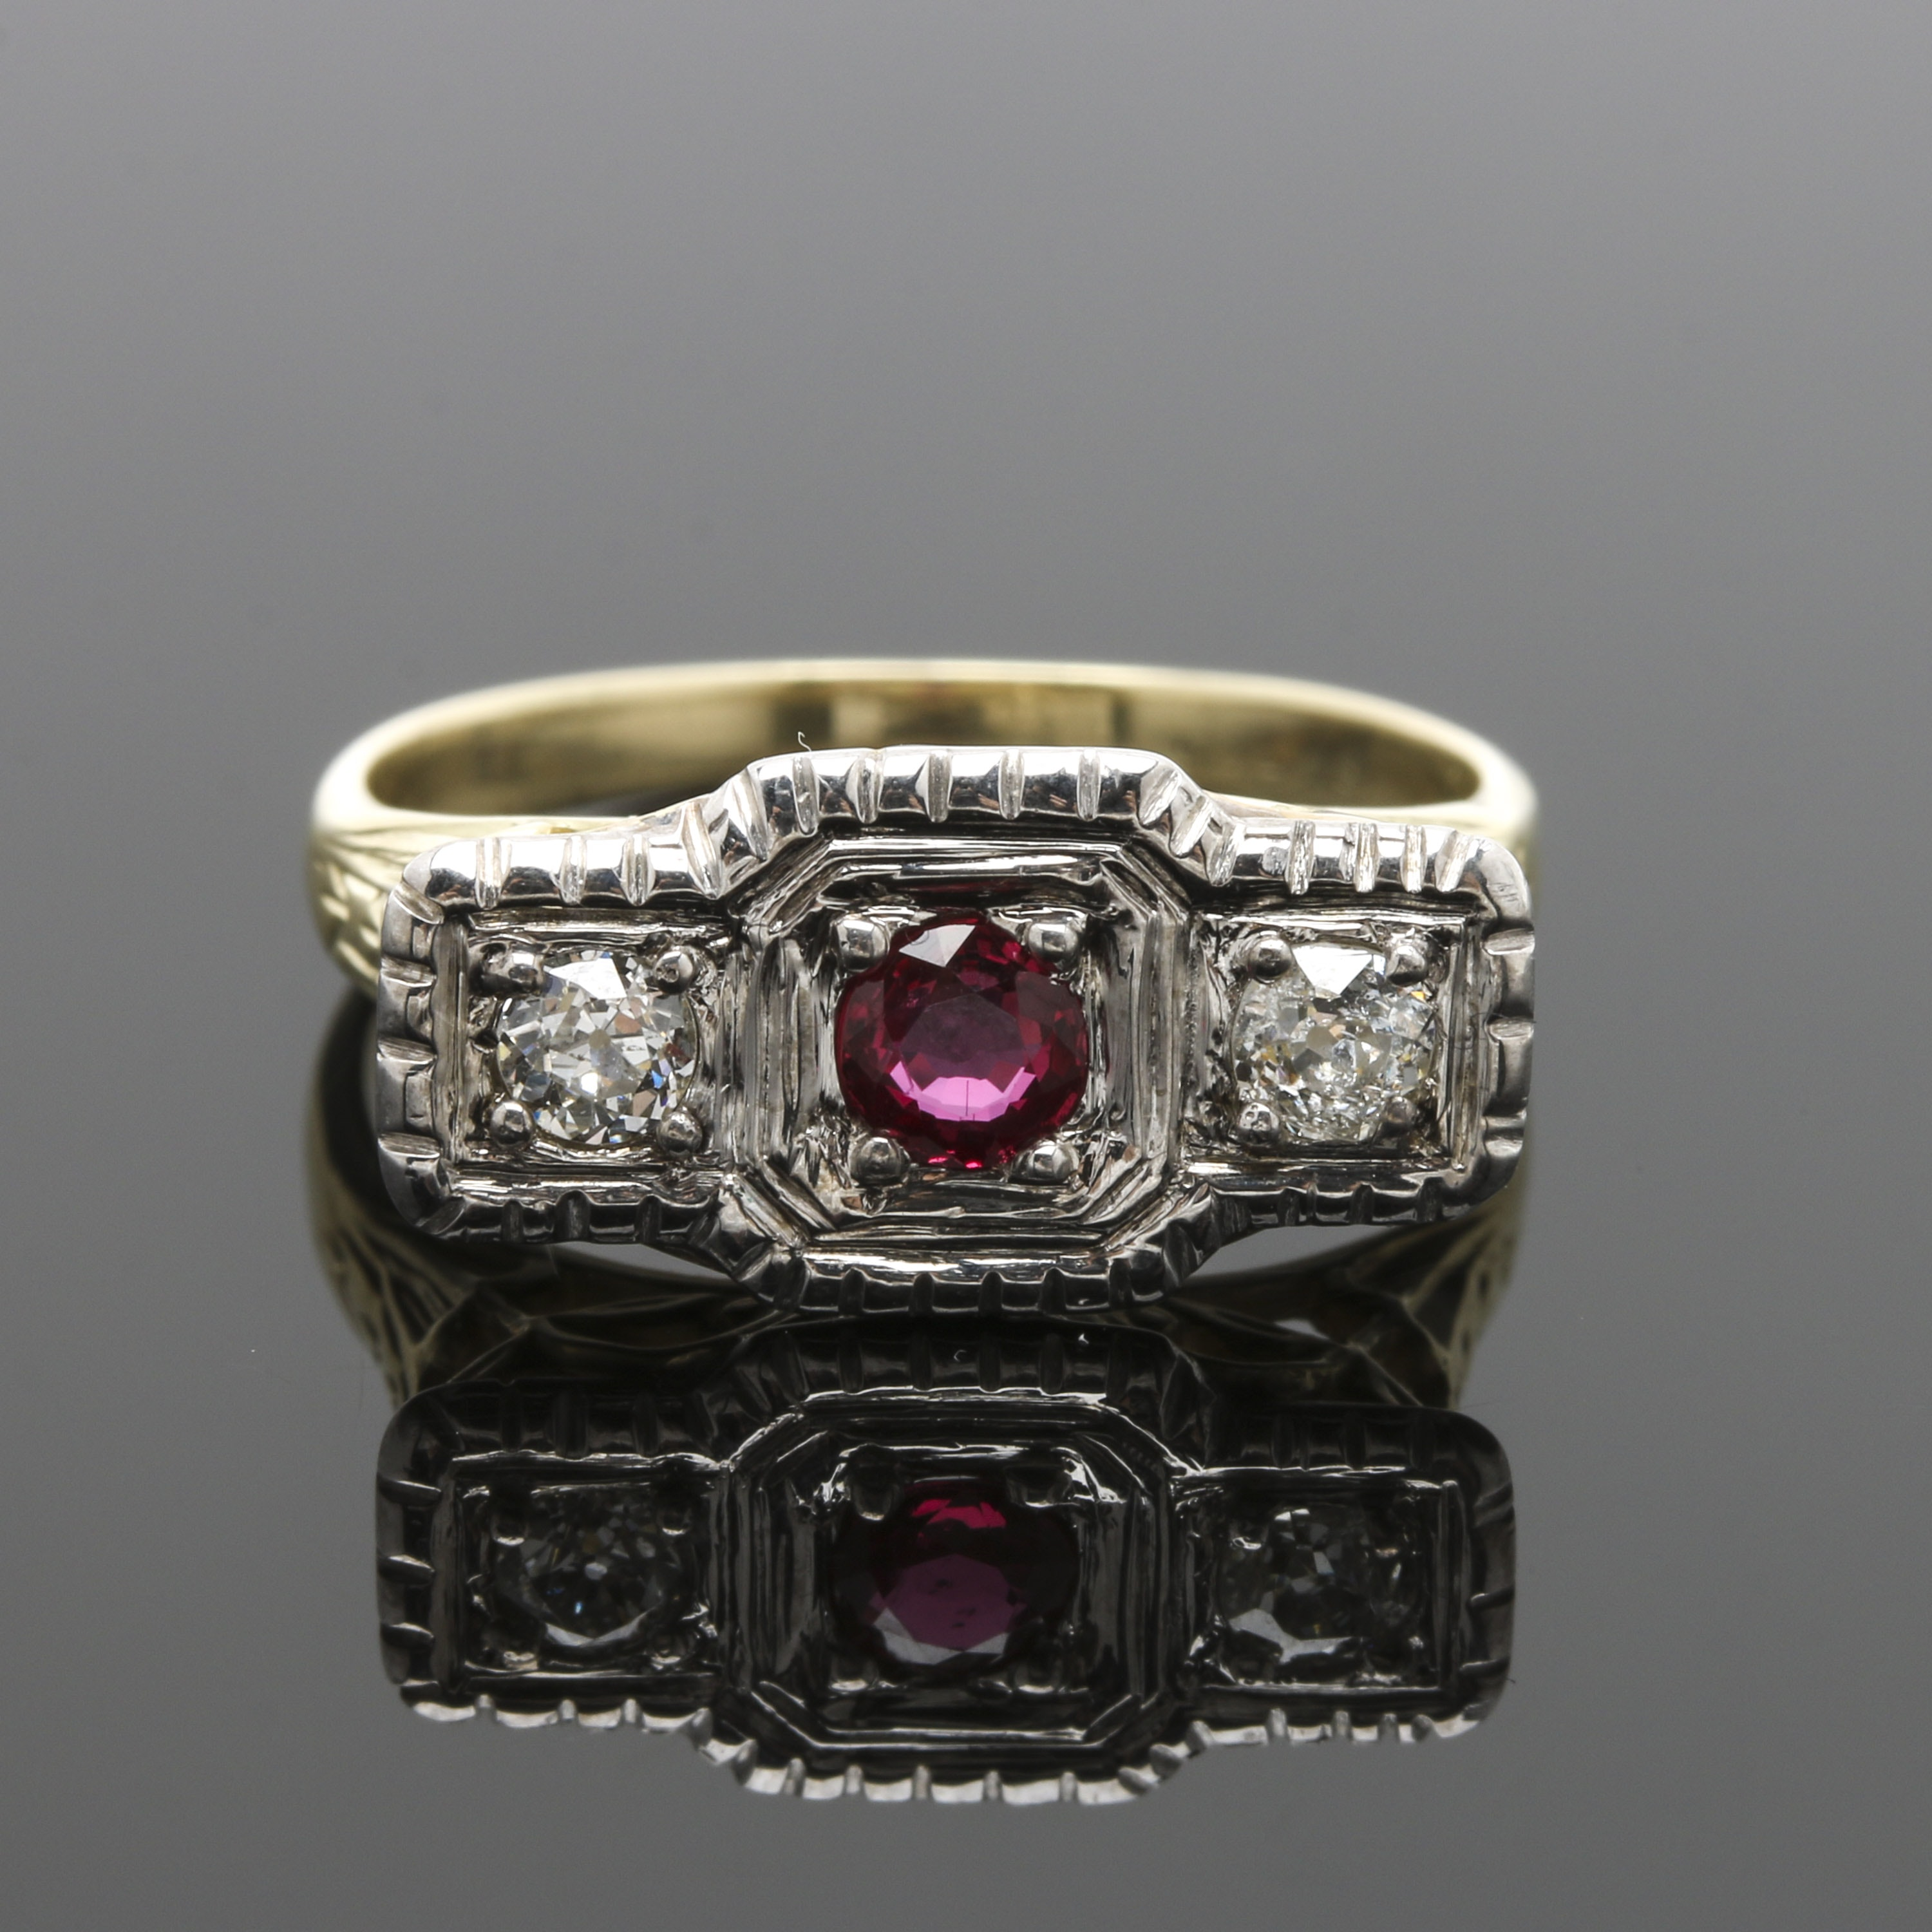 Circa 1910s Ostby & Barton 14K and 18K Two Tone Gold Ruby and Diamond Ring